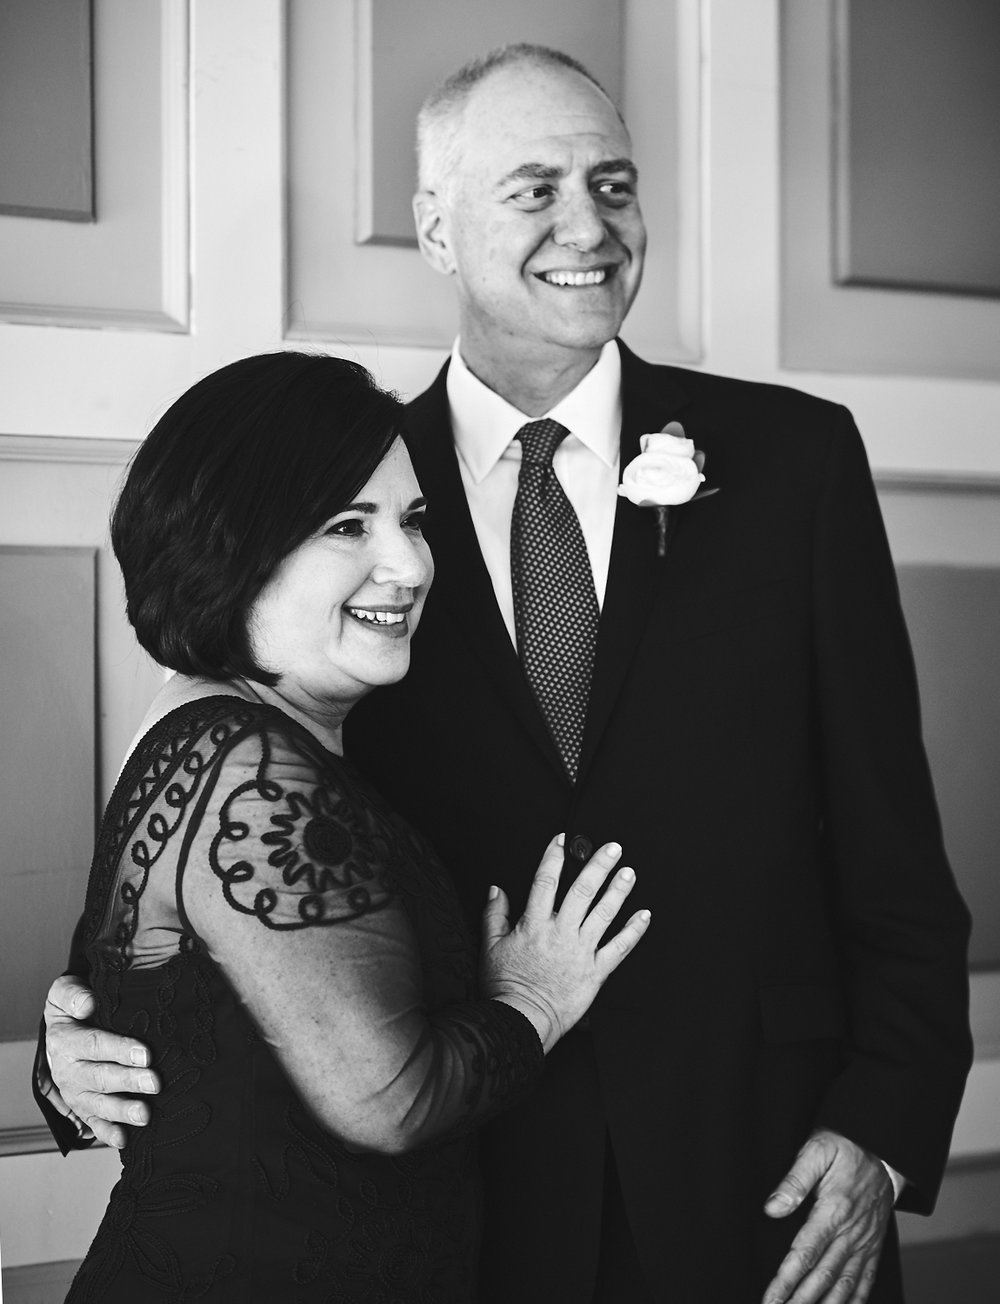 180324_StonehouseatStirlingRidgeWeddingPhotography_NJWeddingPhotographer_By_BriJohnsonWeddings_0068.jpg